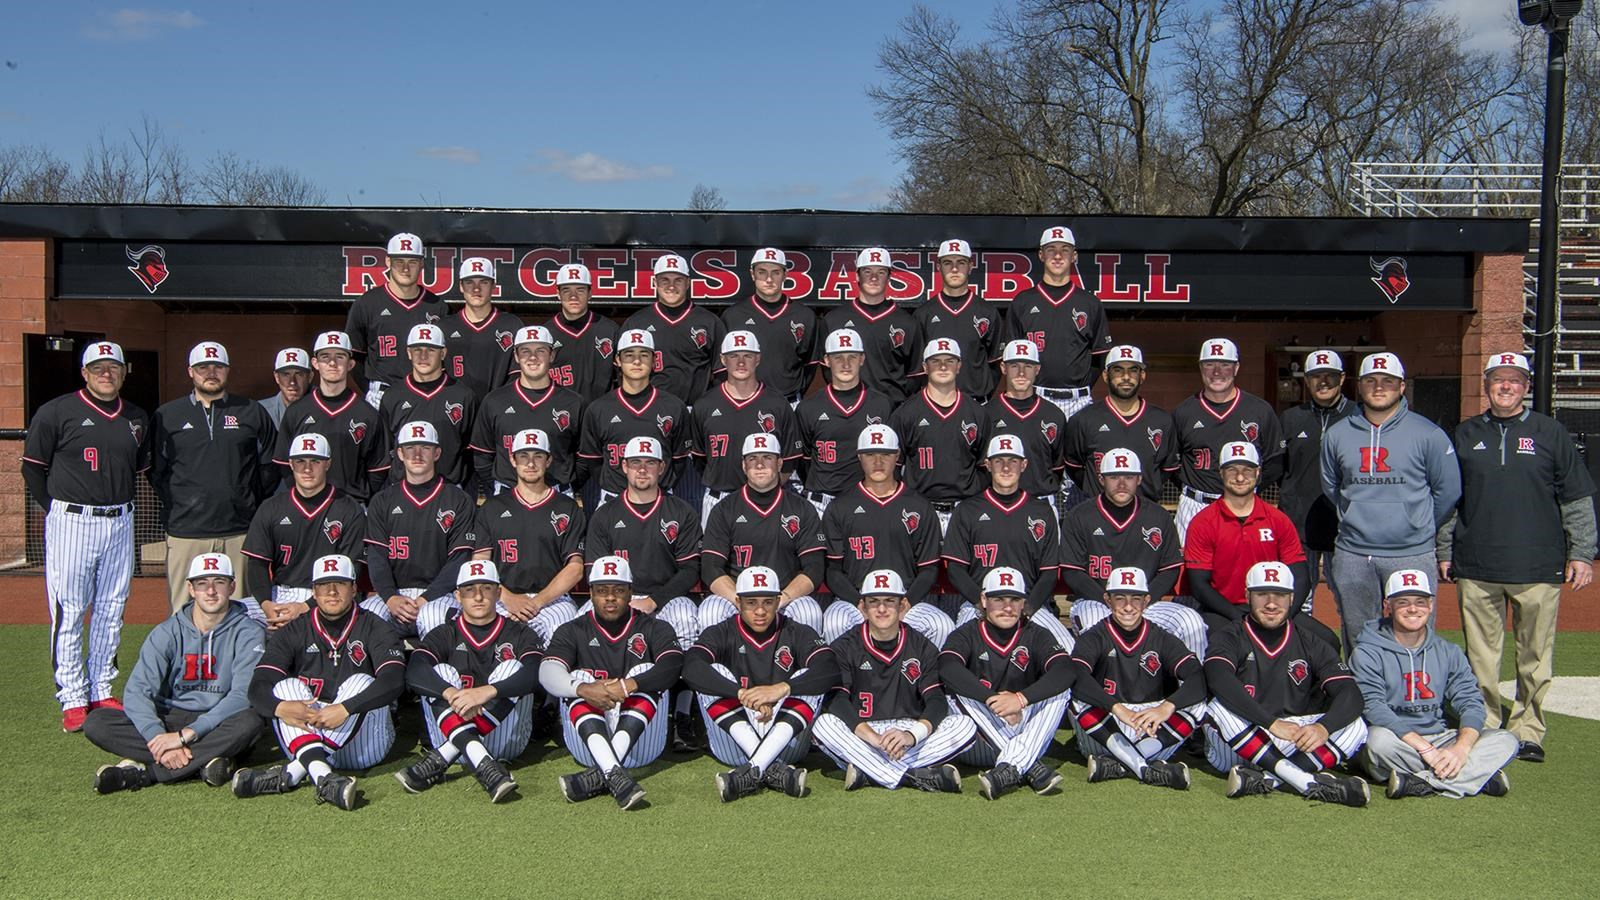 A look at the entire baseball team in a photo